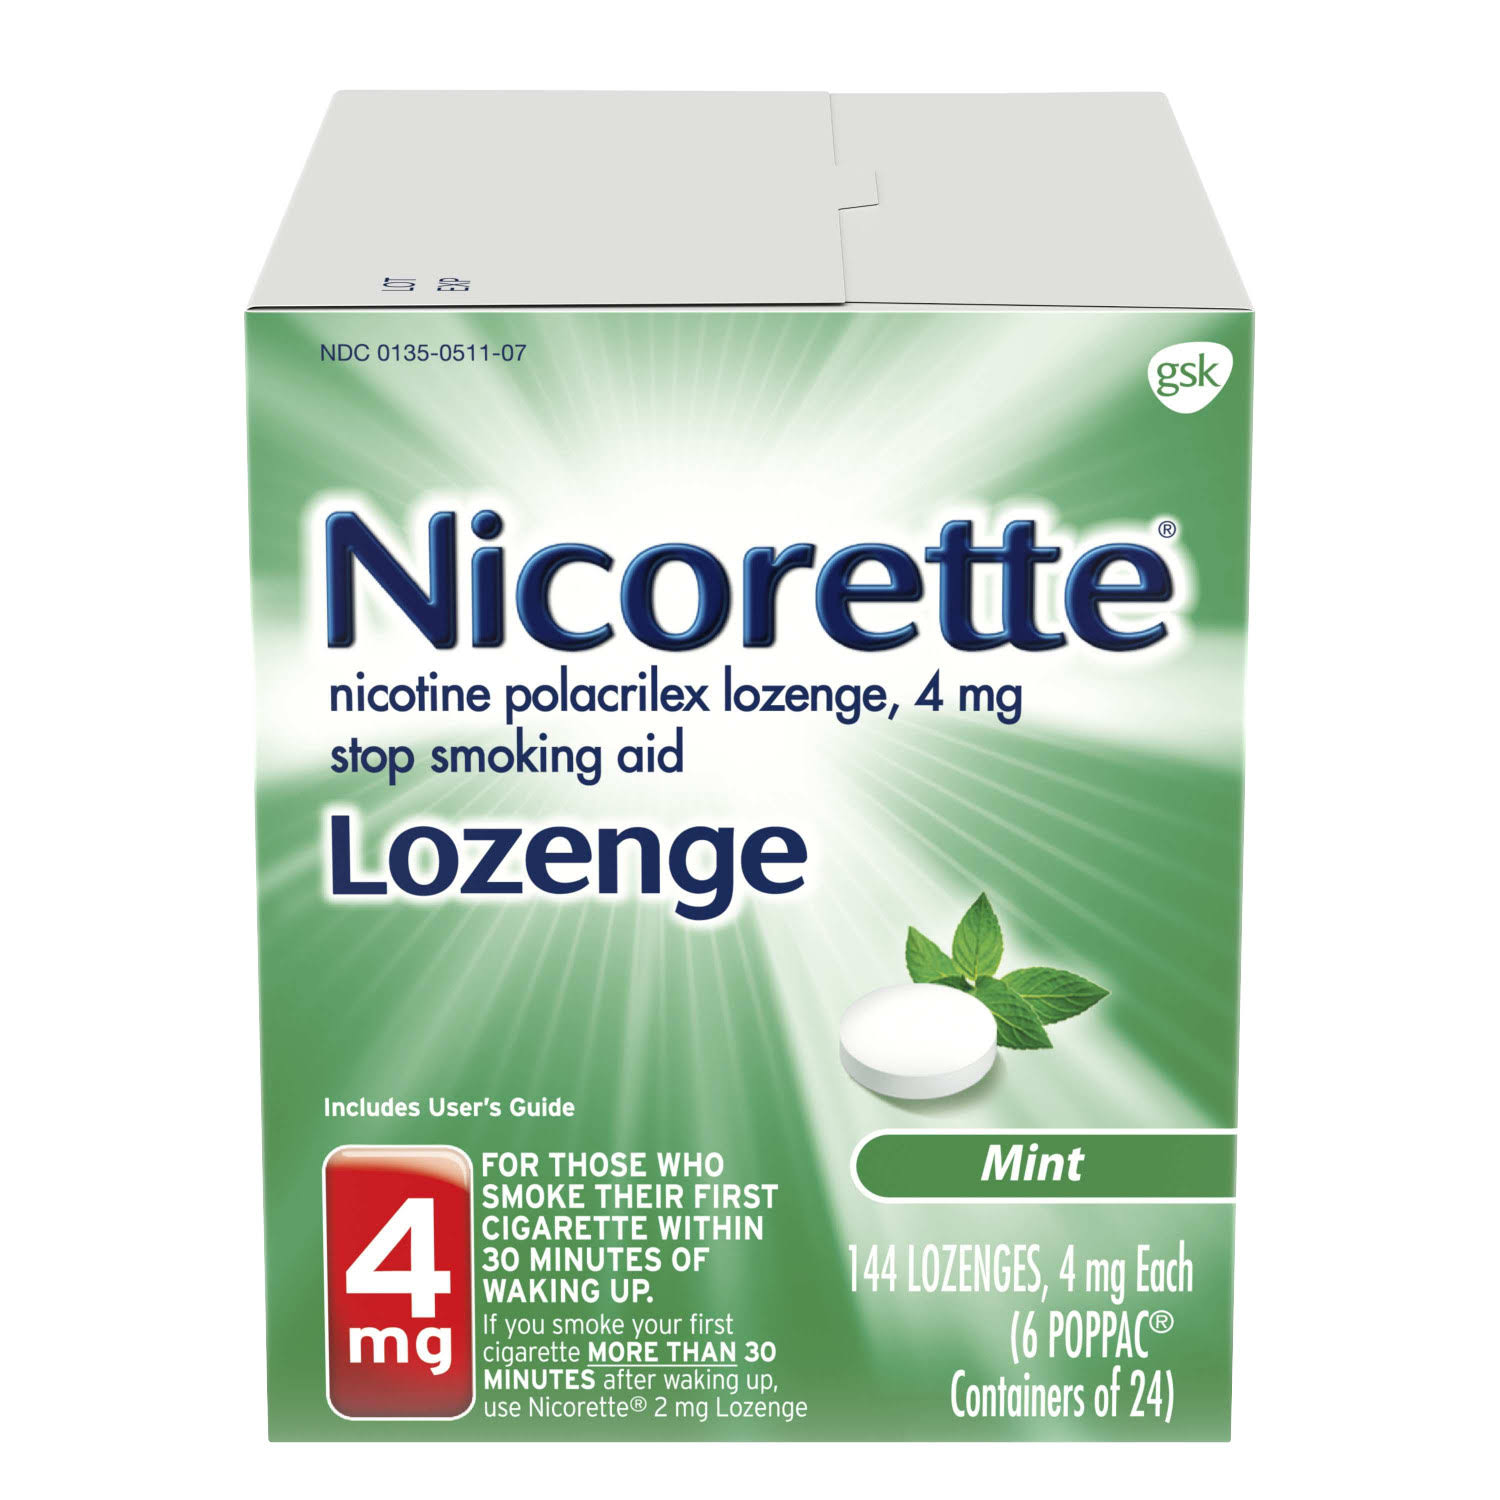 Gsk Nicorette Mint Lozenges - 4mg, 144pk